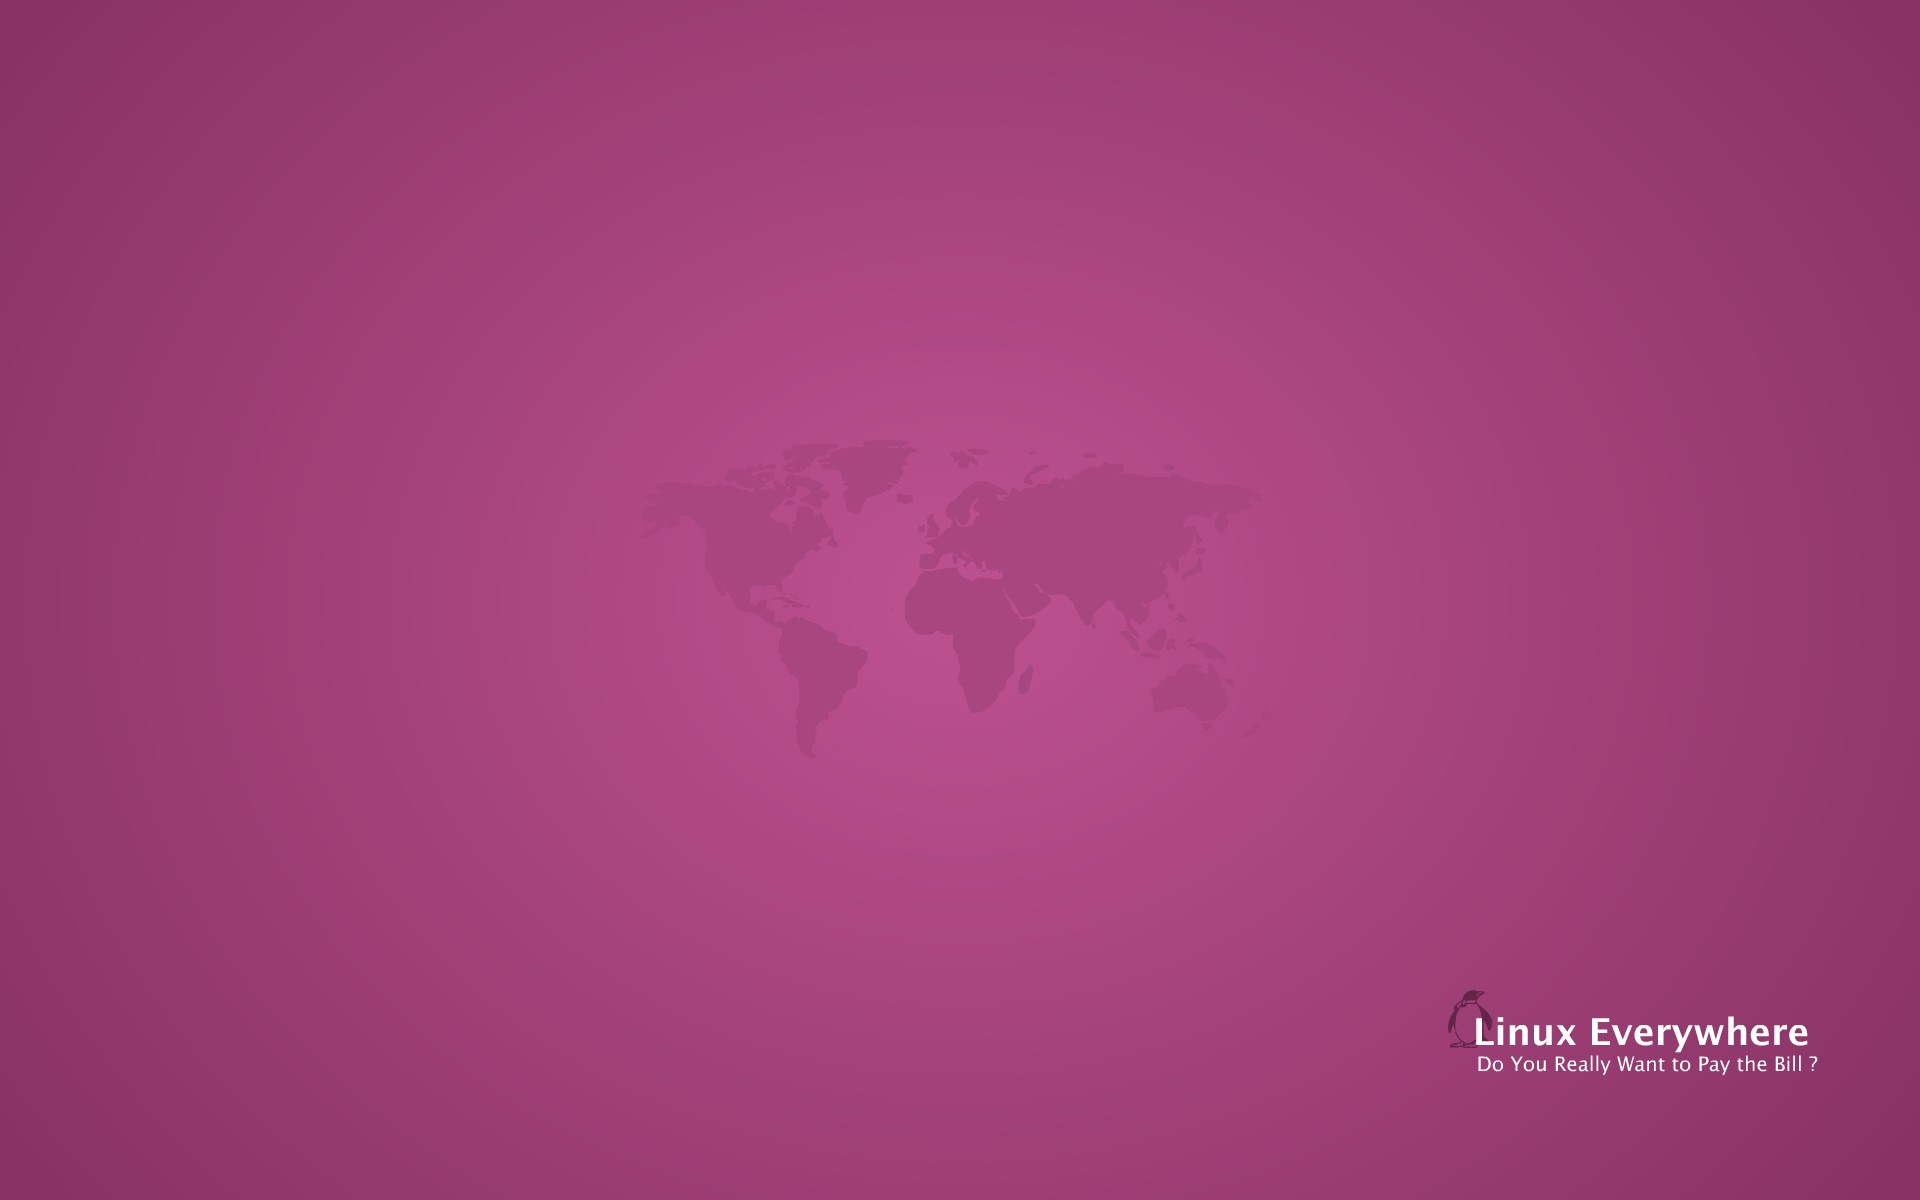 Pink linux world map wallpaper allwallpaper 10376 pc en pink linux world map wallpaper gumiabroncs